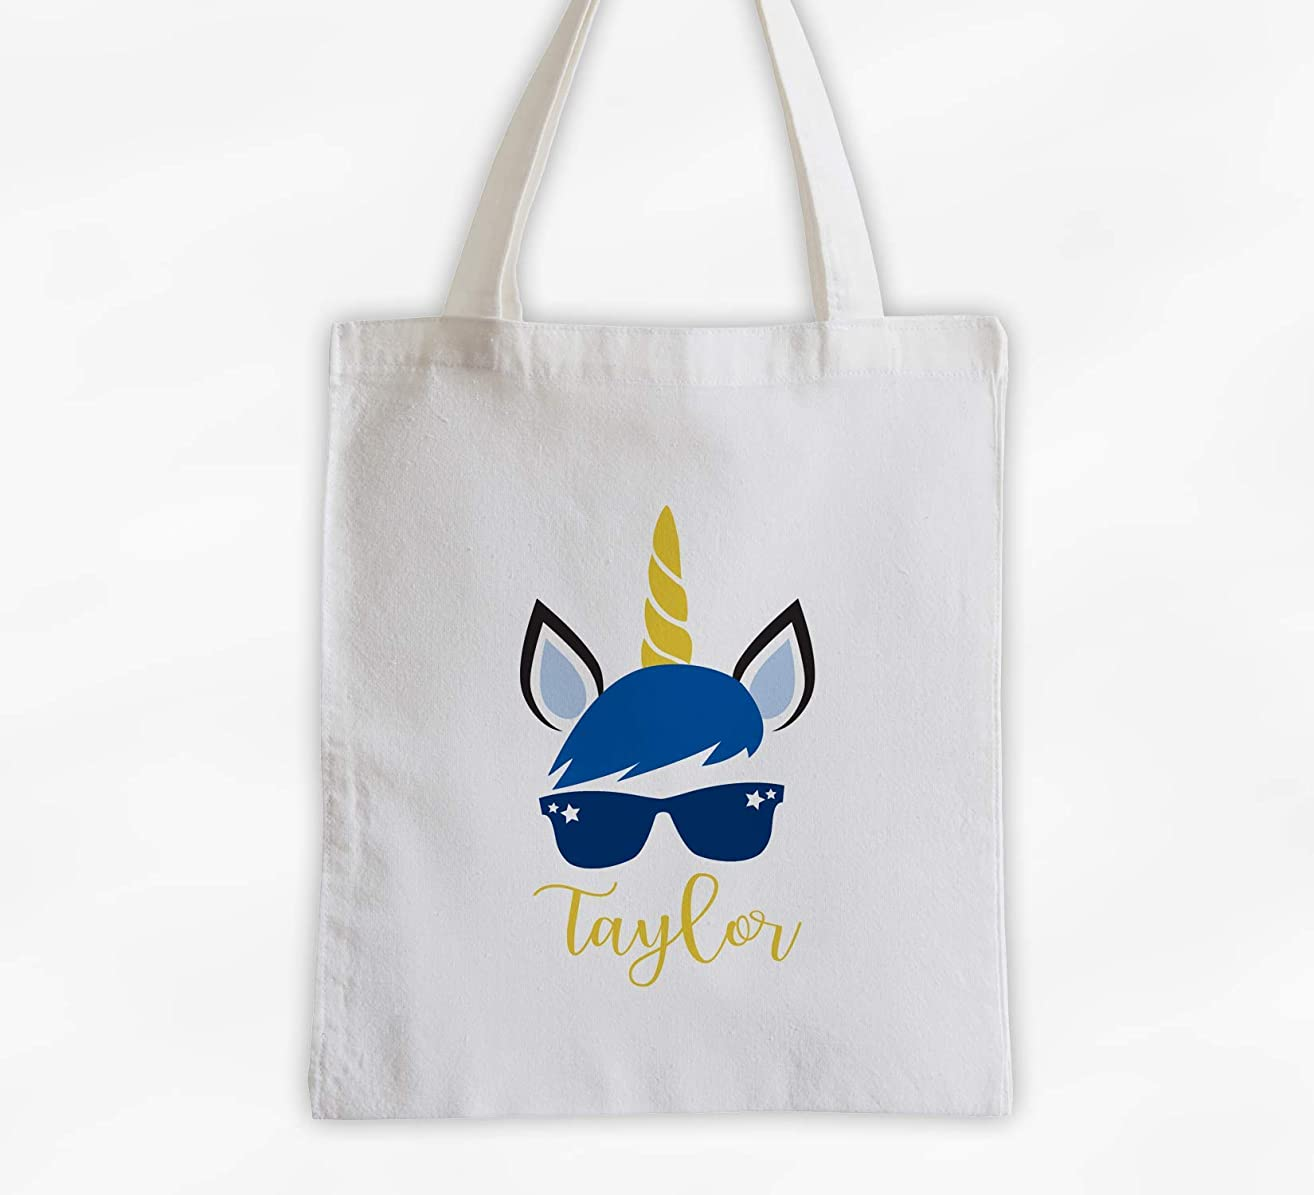 Boy Unicorn with Sunglasses Kids Tote Bag - Personalized Unicorn Face Cotton Overnight Bag for Girls or Boys (3048-U4)